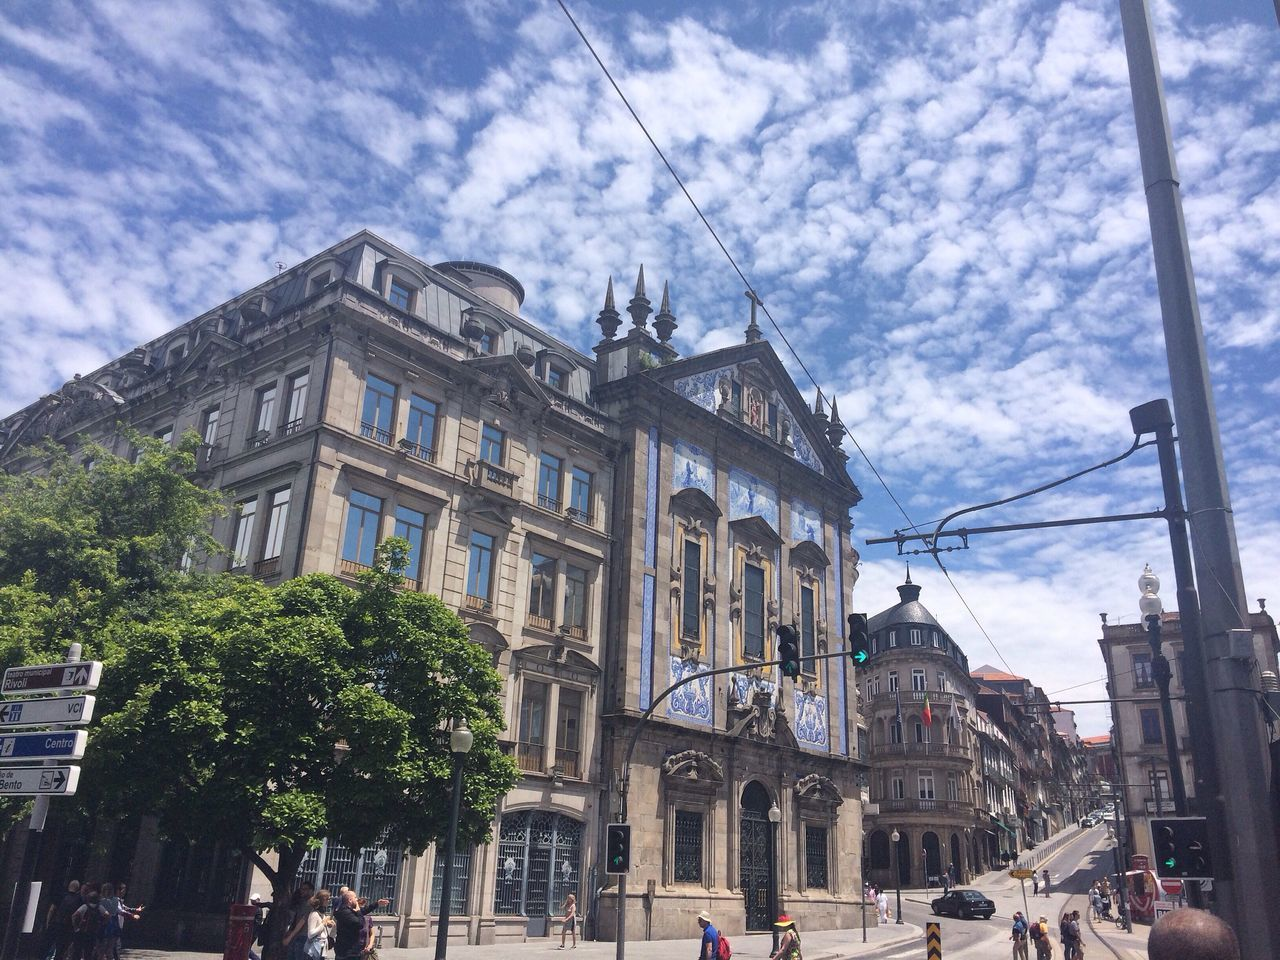 Porto Blue Sky White Clouds Architecture Street View CF Lanscape Portugal Igreja Church